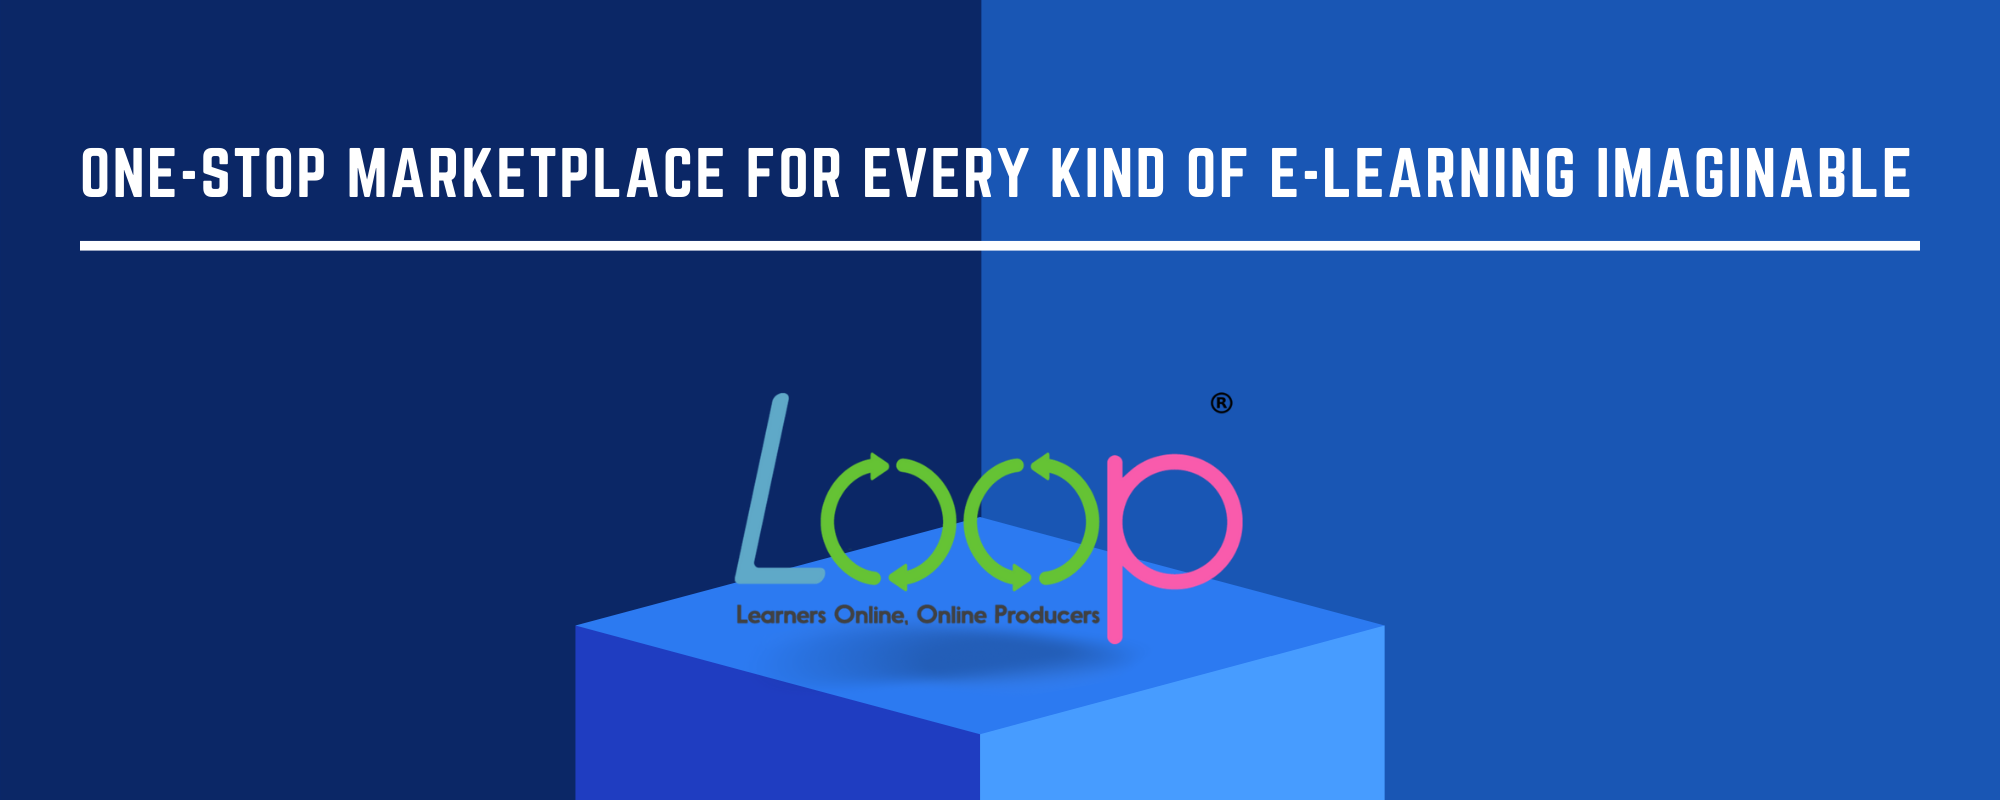 eLearning marketplace Loop